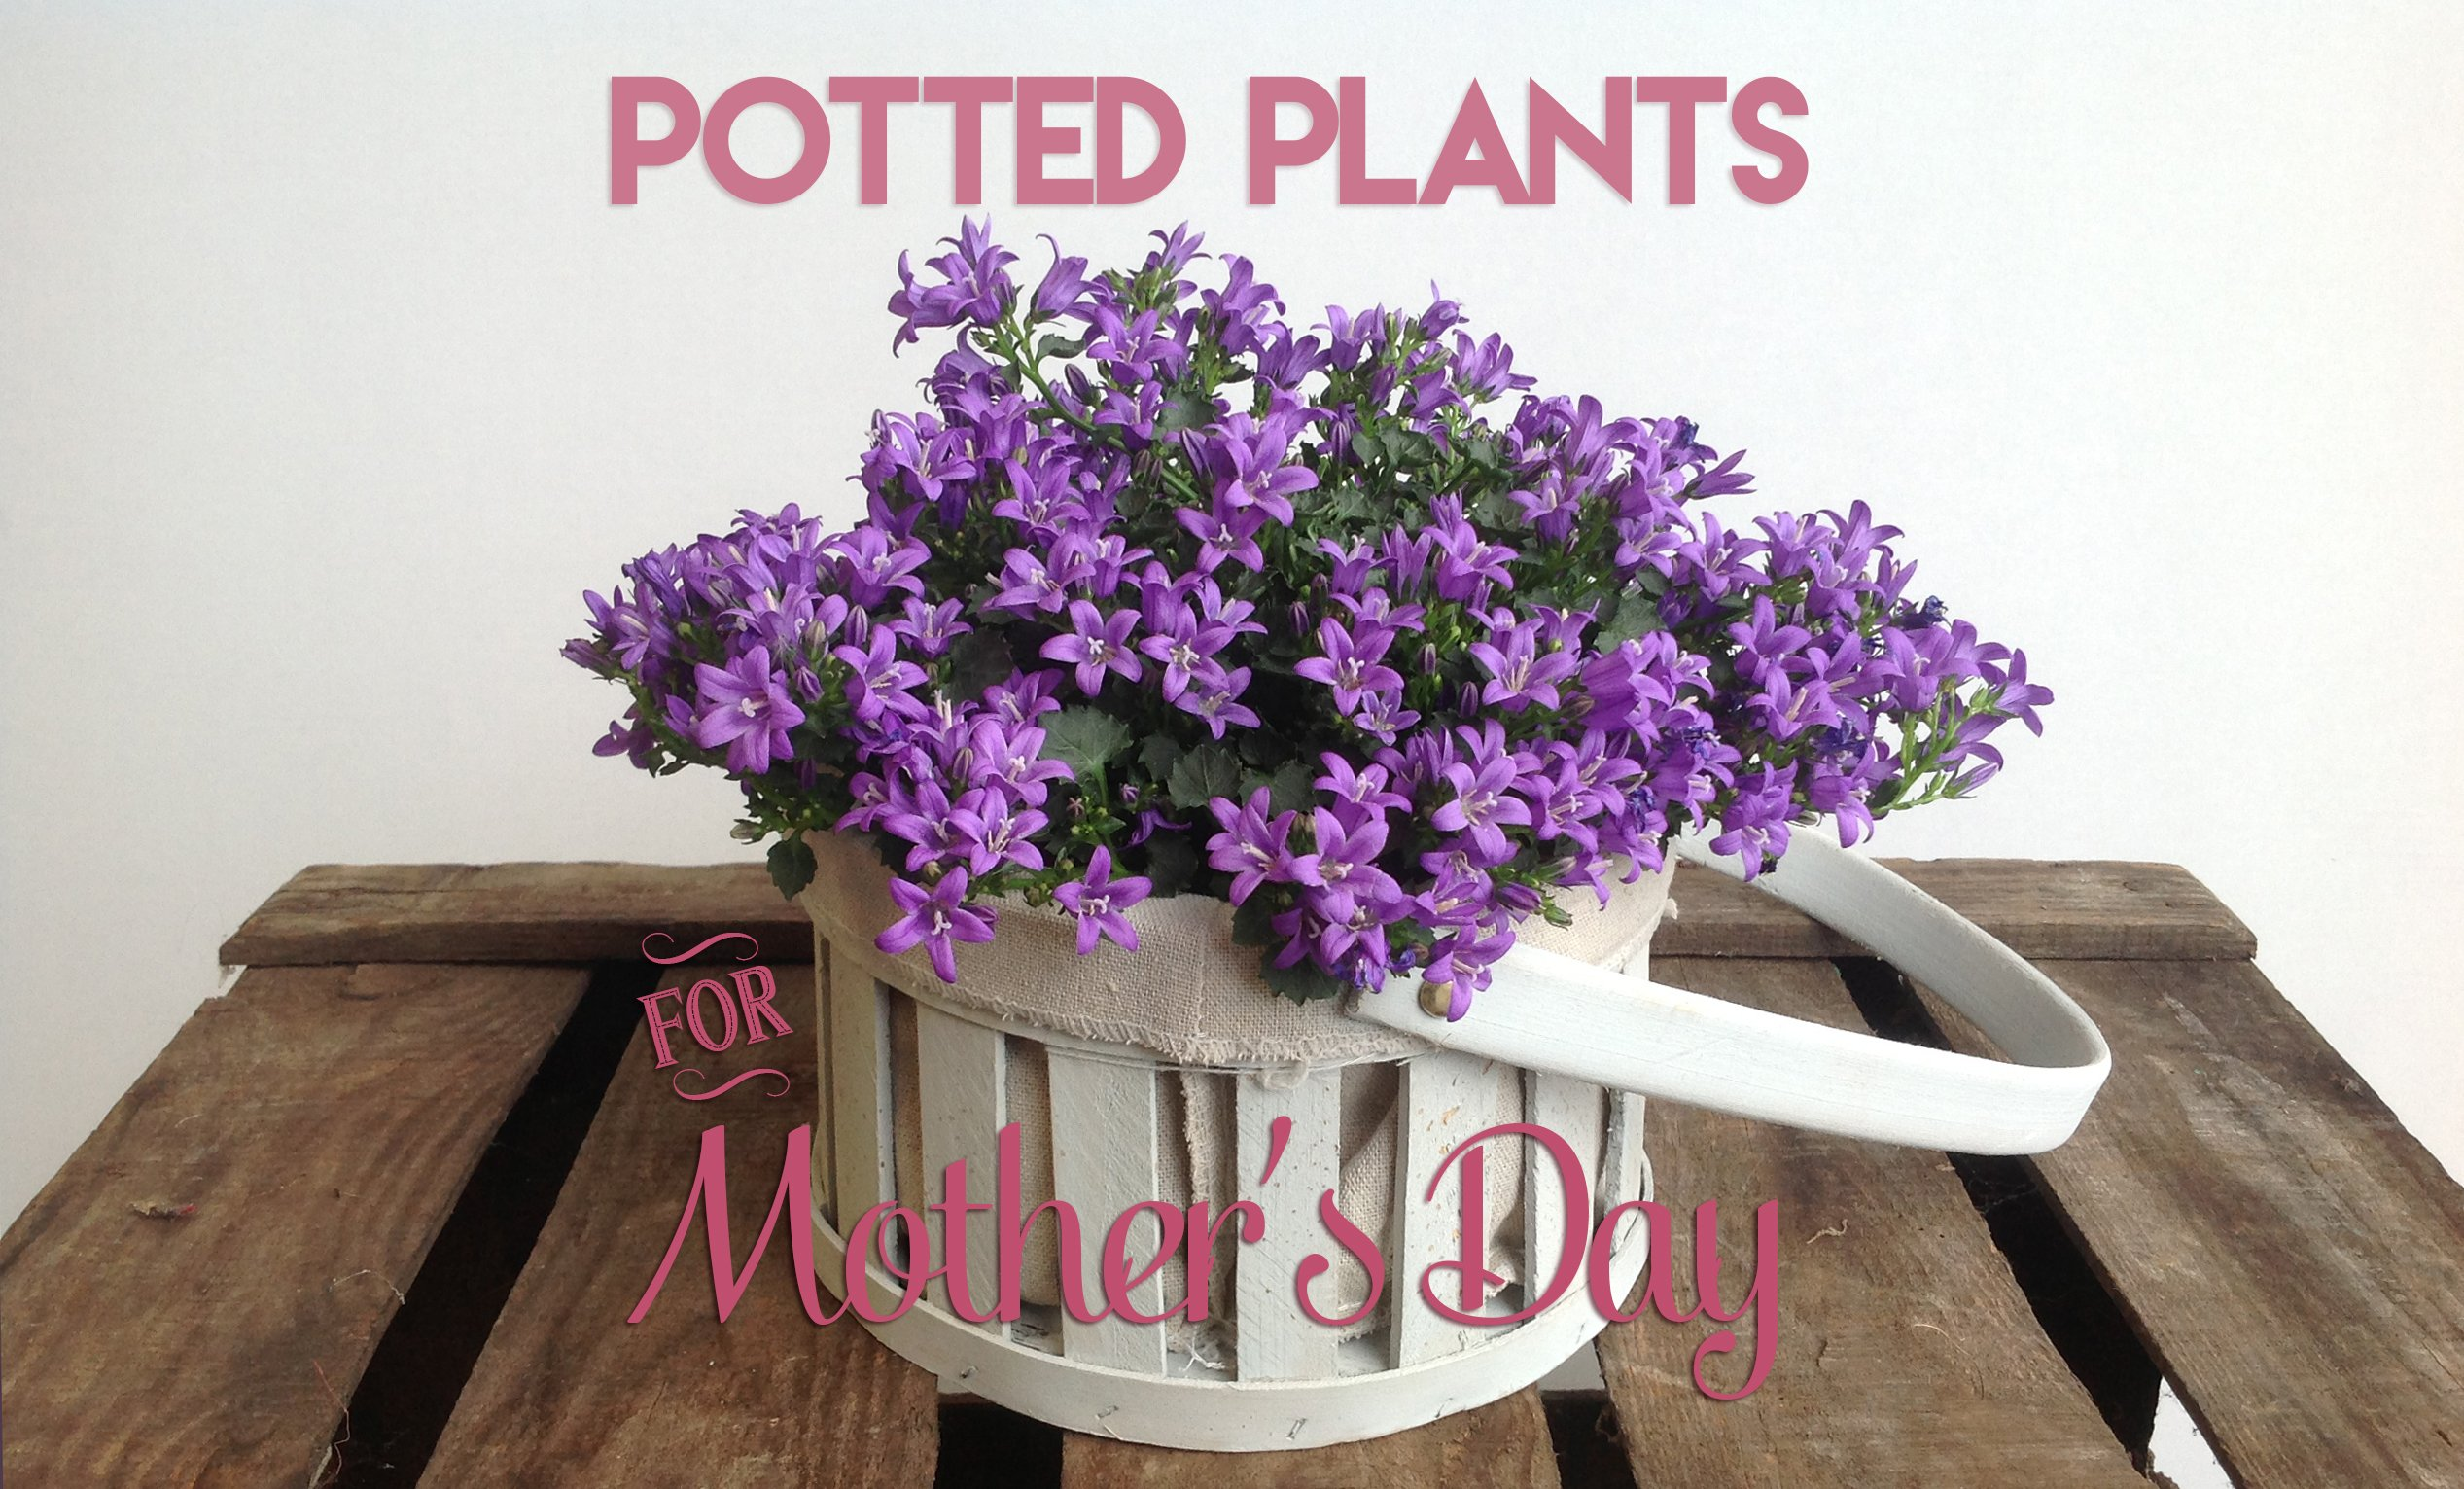 Send potted plants for Mother's Day